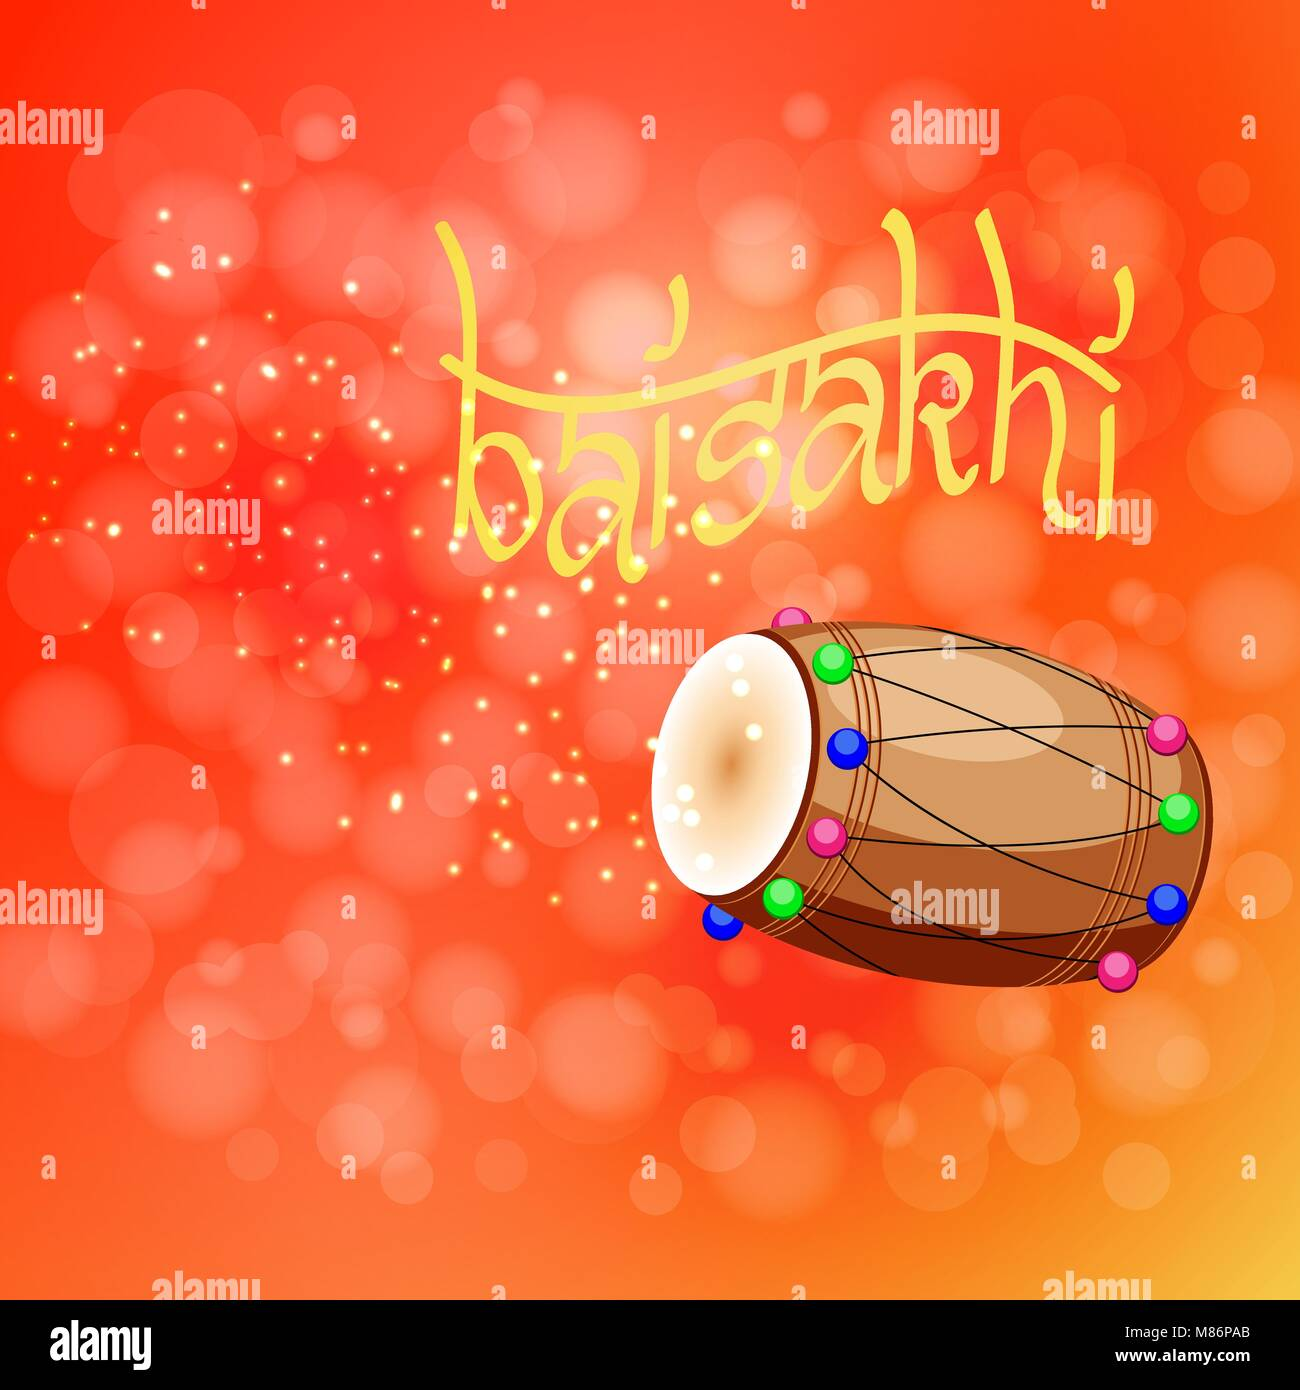 Celebration Holiday Baisakhi. New Year of the Sikhs. Drum, dholak, devanagari. On a red-orange background - Stock Vector